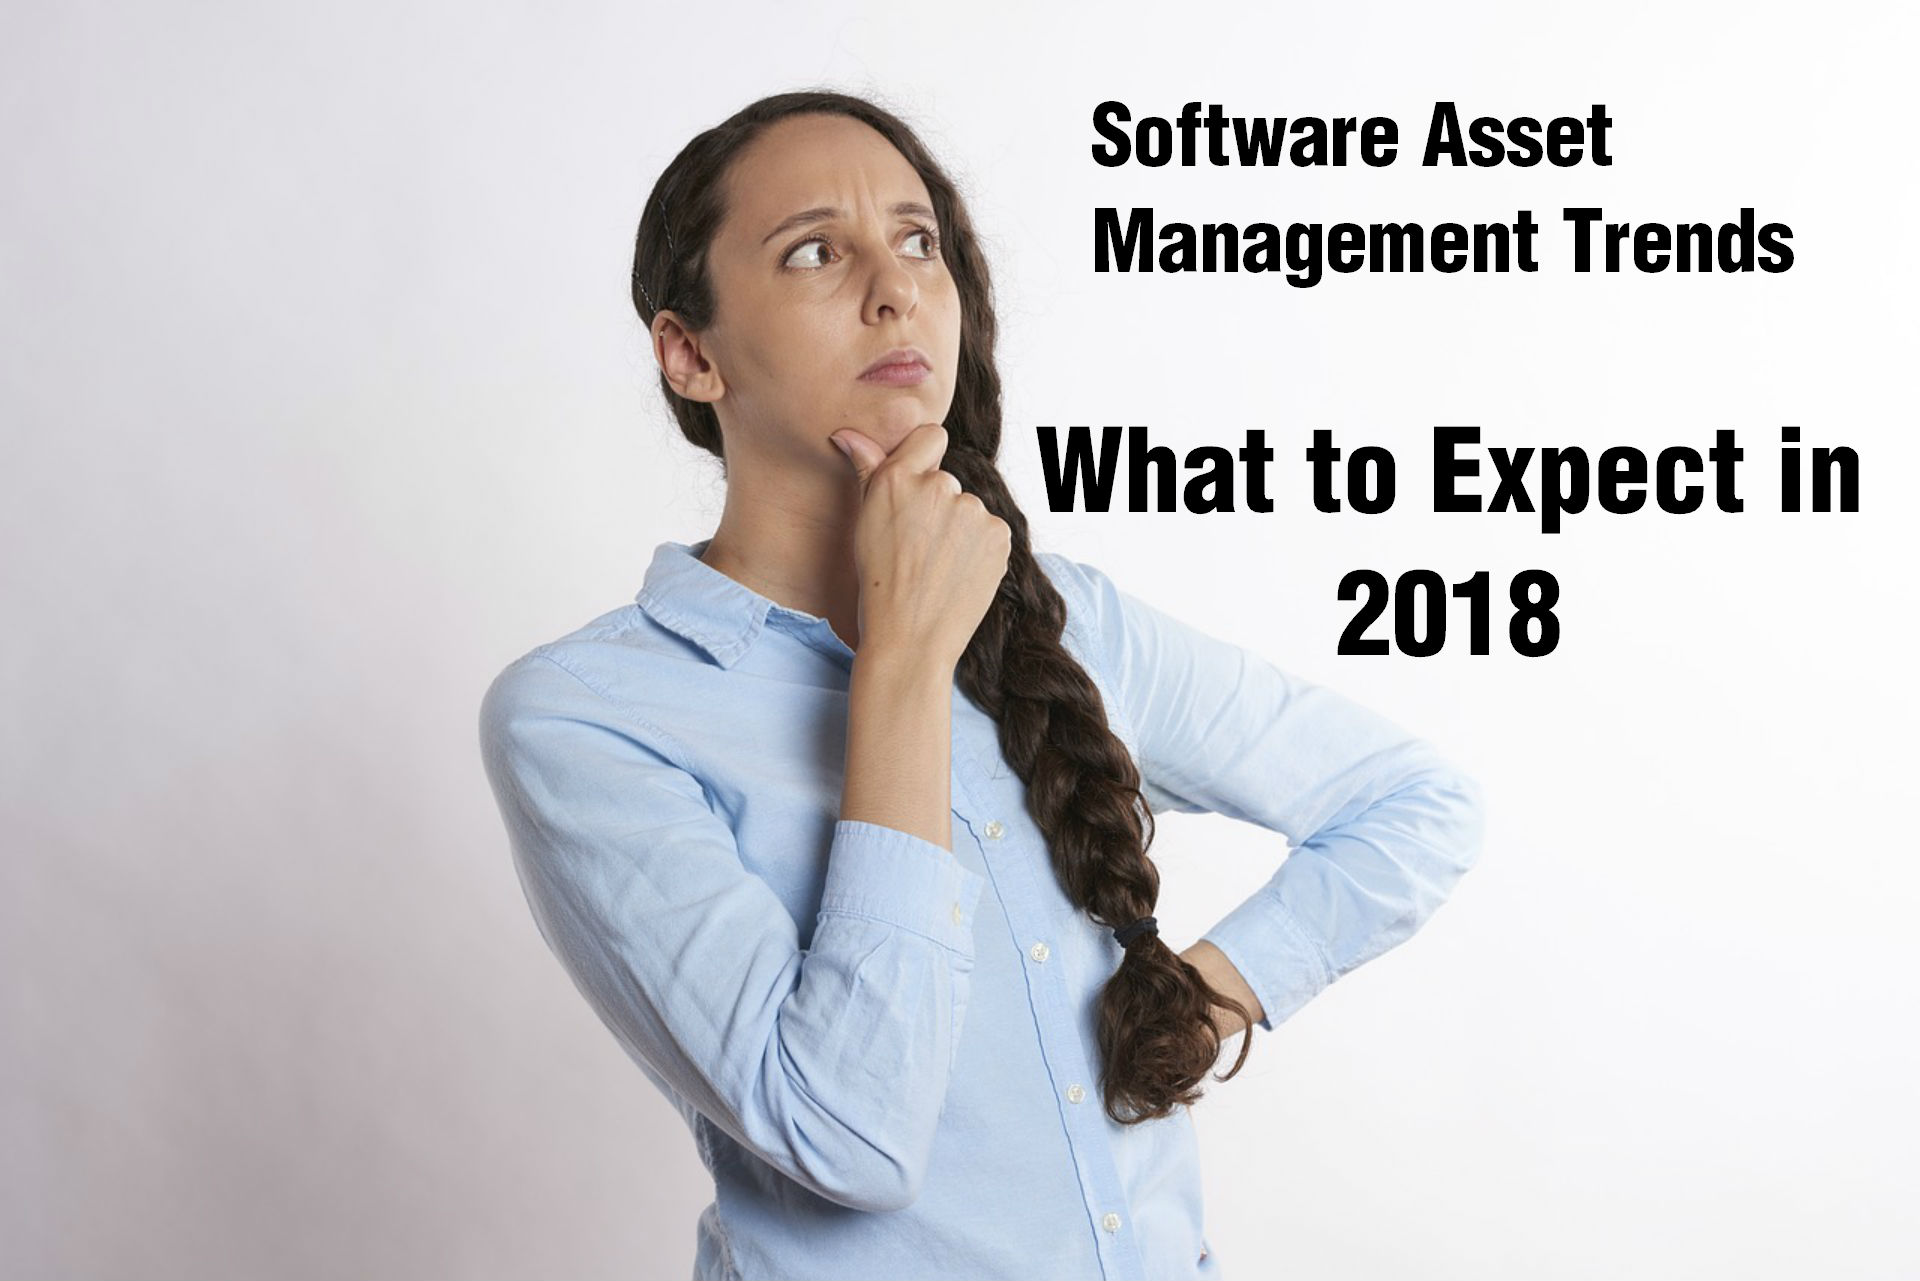 Software Licensing and Software Asset Management Trends – What to watch for in 2018